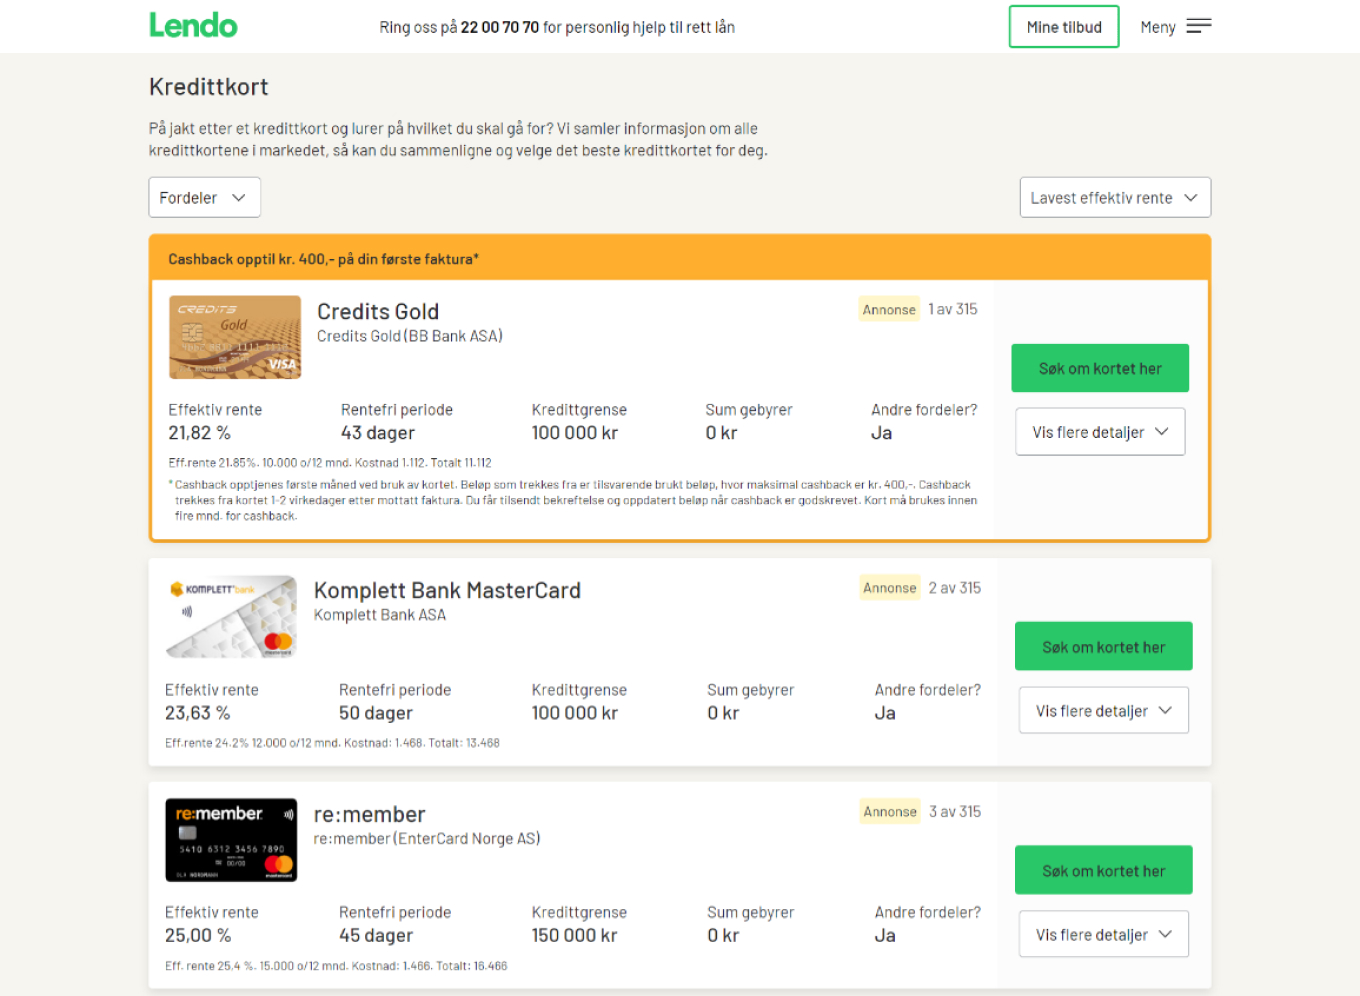 Lendo users can even use the site to compare credit card offers. Lendo collects information on all the credit cards in the marketplace and displays the essential information in one place.